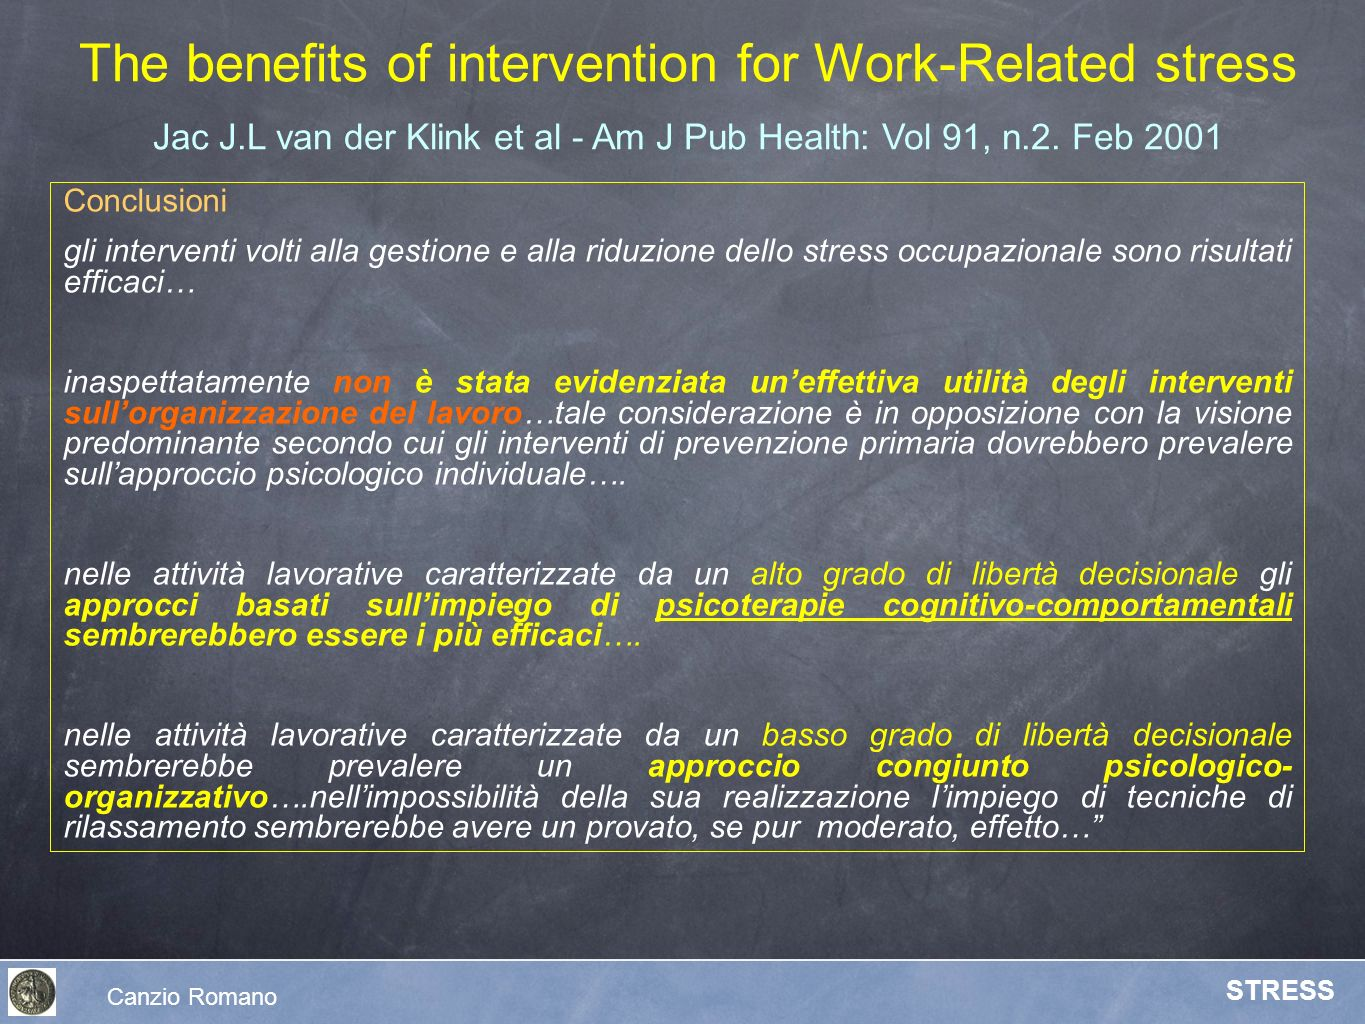 The benefits of intervention for Work-Related stress